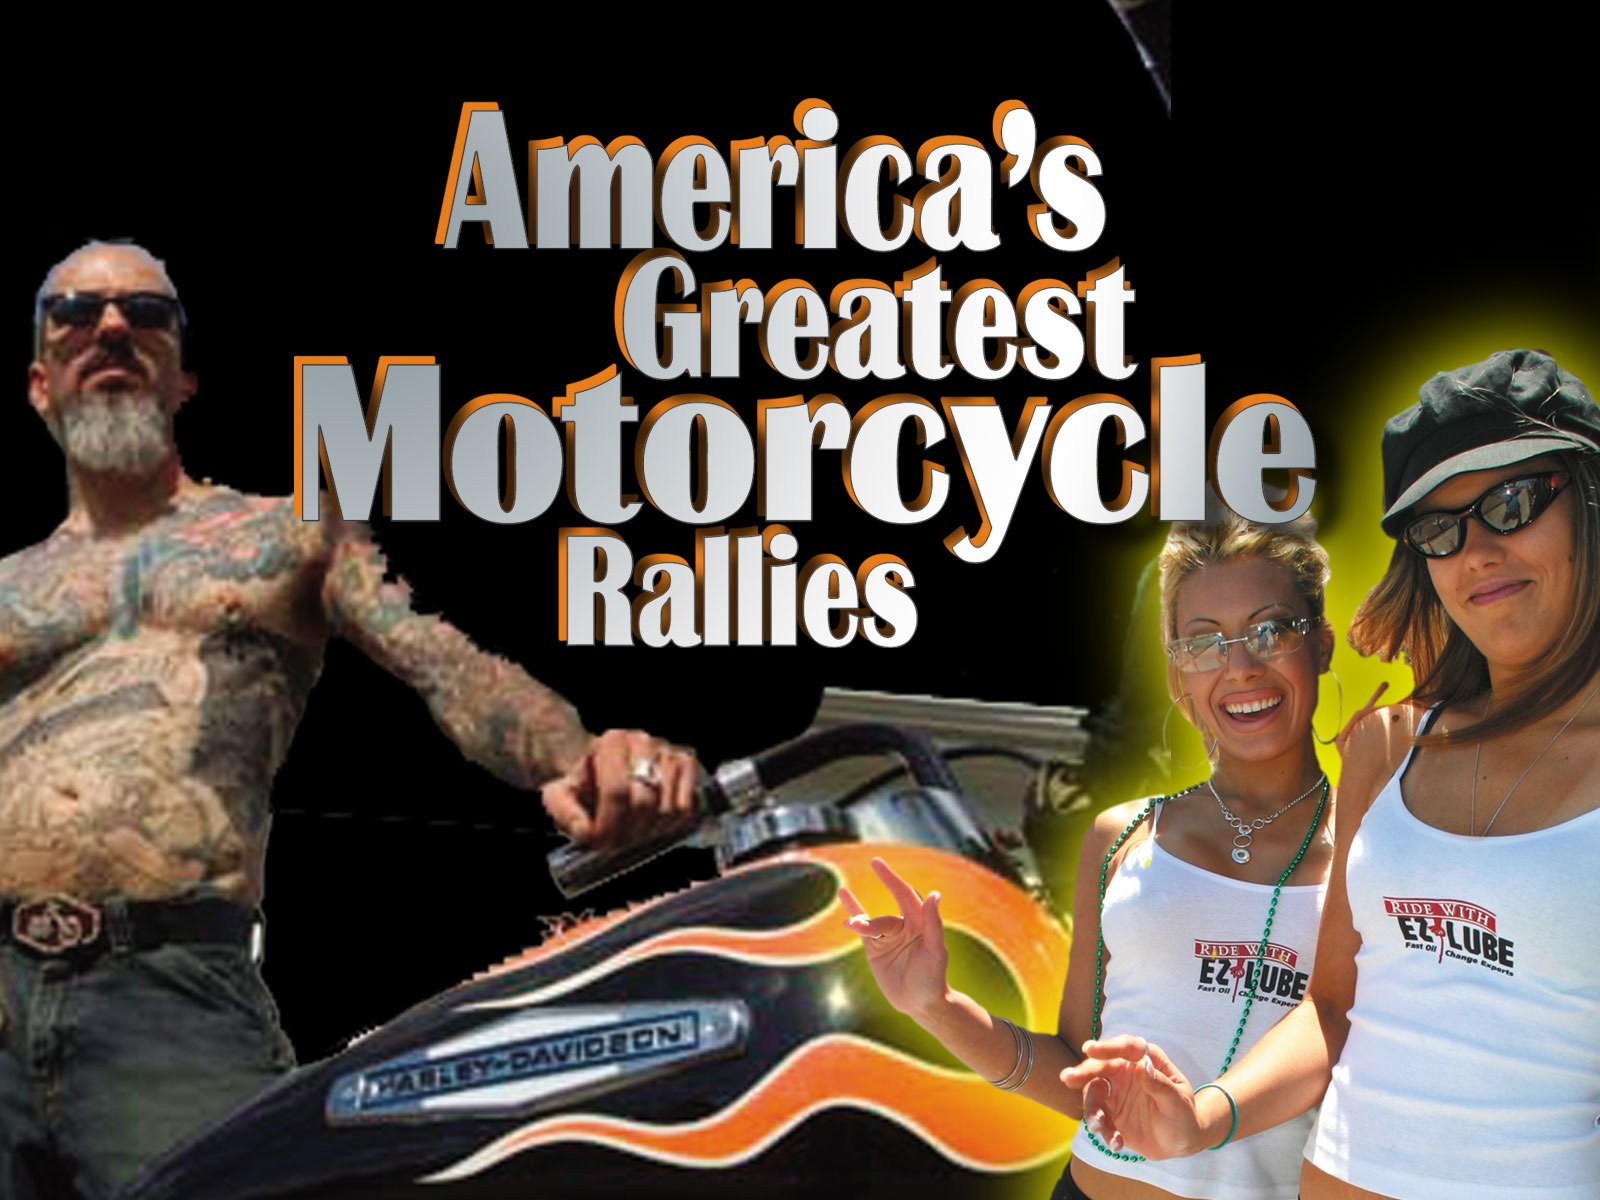 America's Greatest Motorcycle Rallies - Season 1